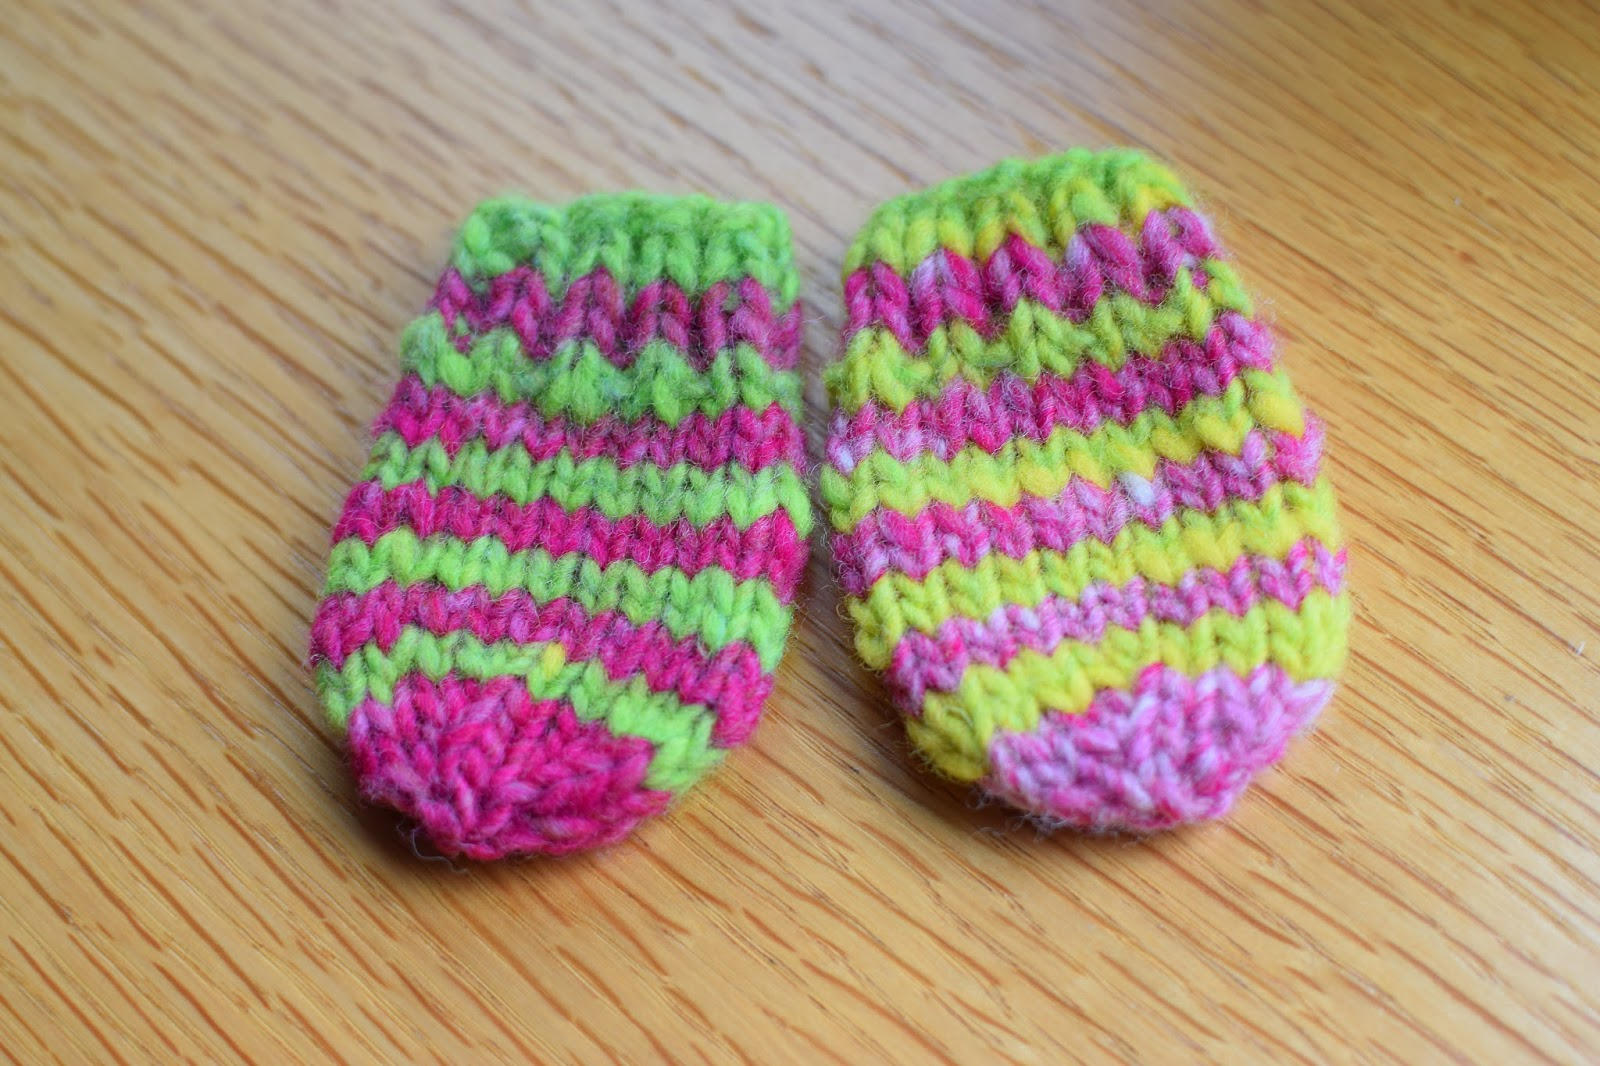 Knitting Pattern For Toddler Mittens With Thumbs : Susan B. Anderson: Waiting for Winter Mittens ~ Bigger and Now Little, too!